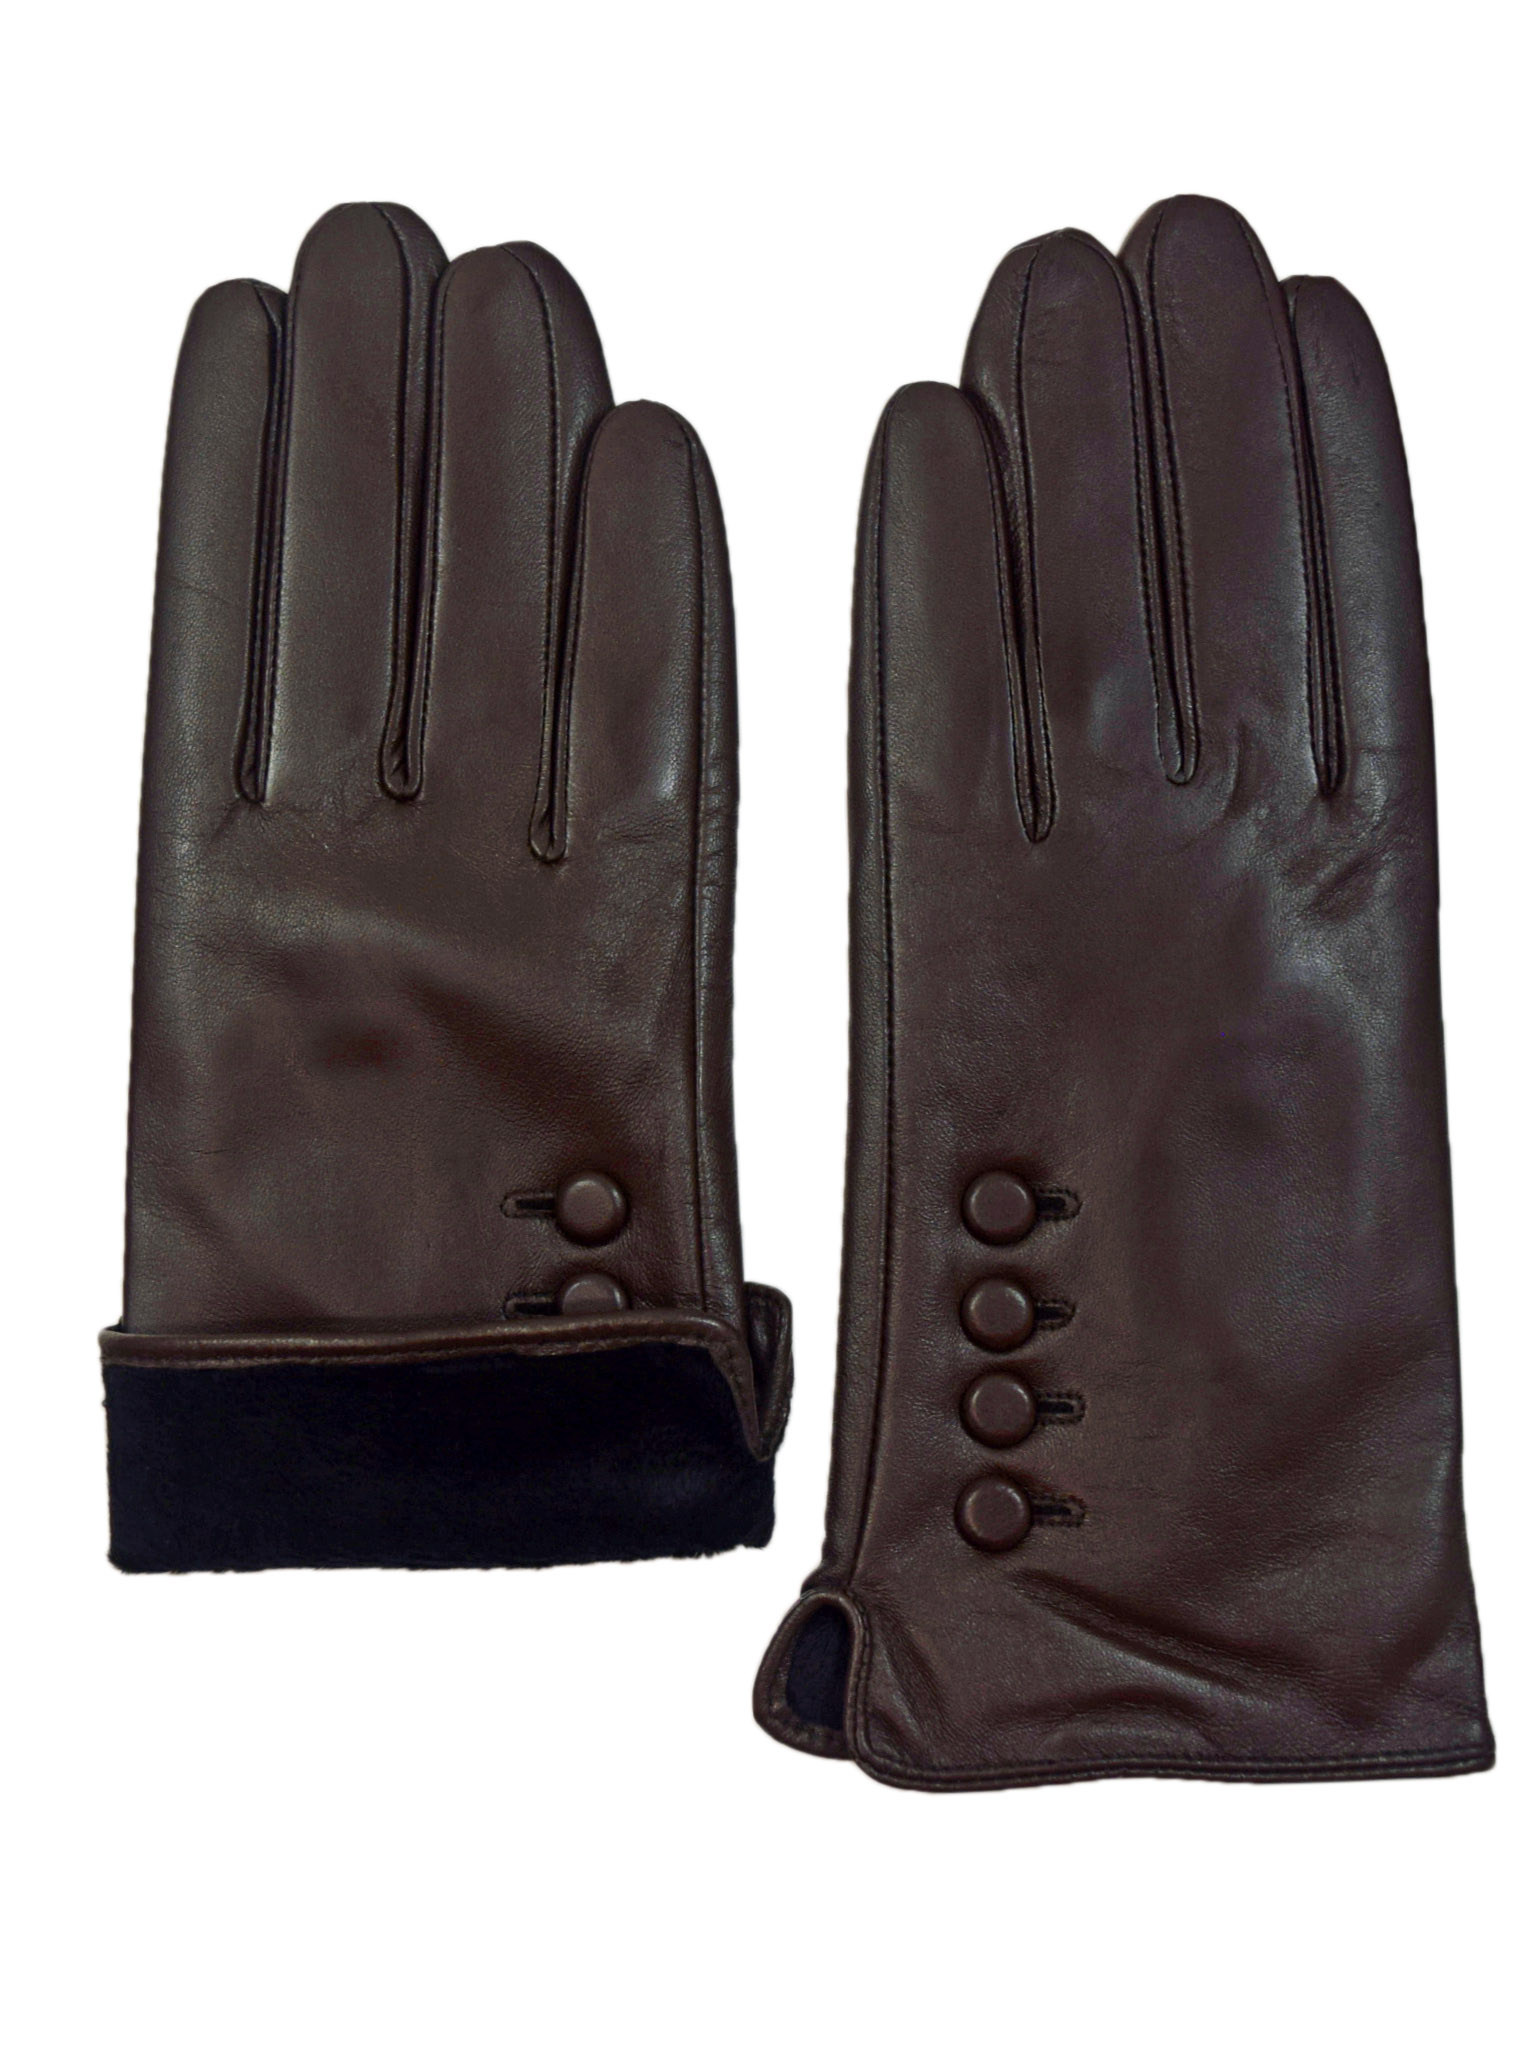 Giromy-Samoni-Womens-Warm-Winter-Plush-Lined-Leather-Driving-Gloves-Brown thumbnail 6